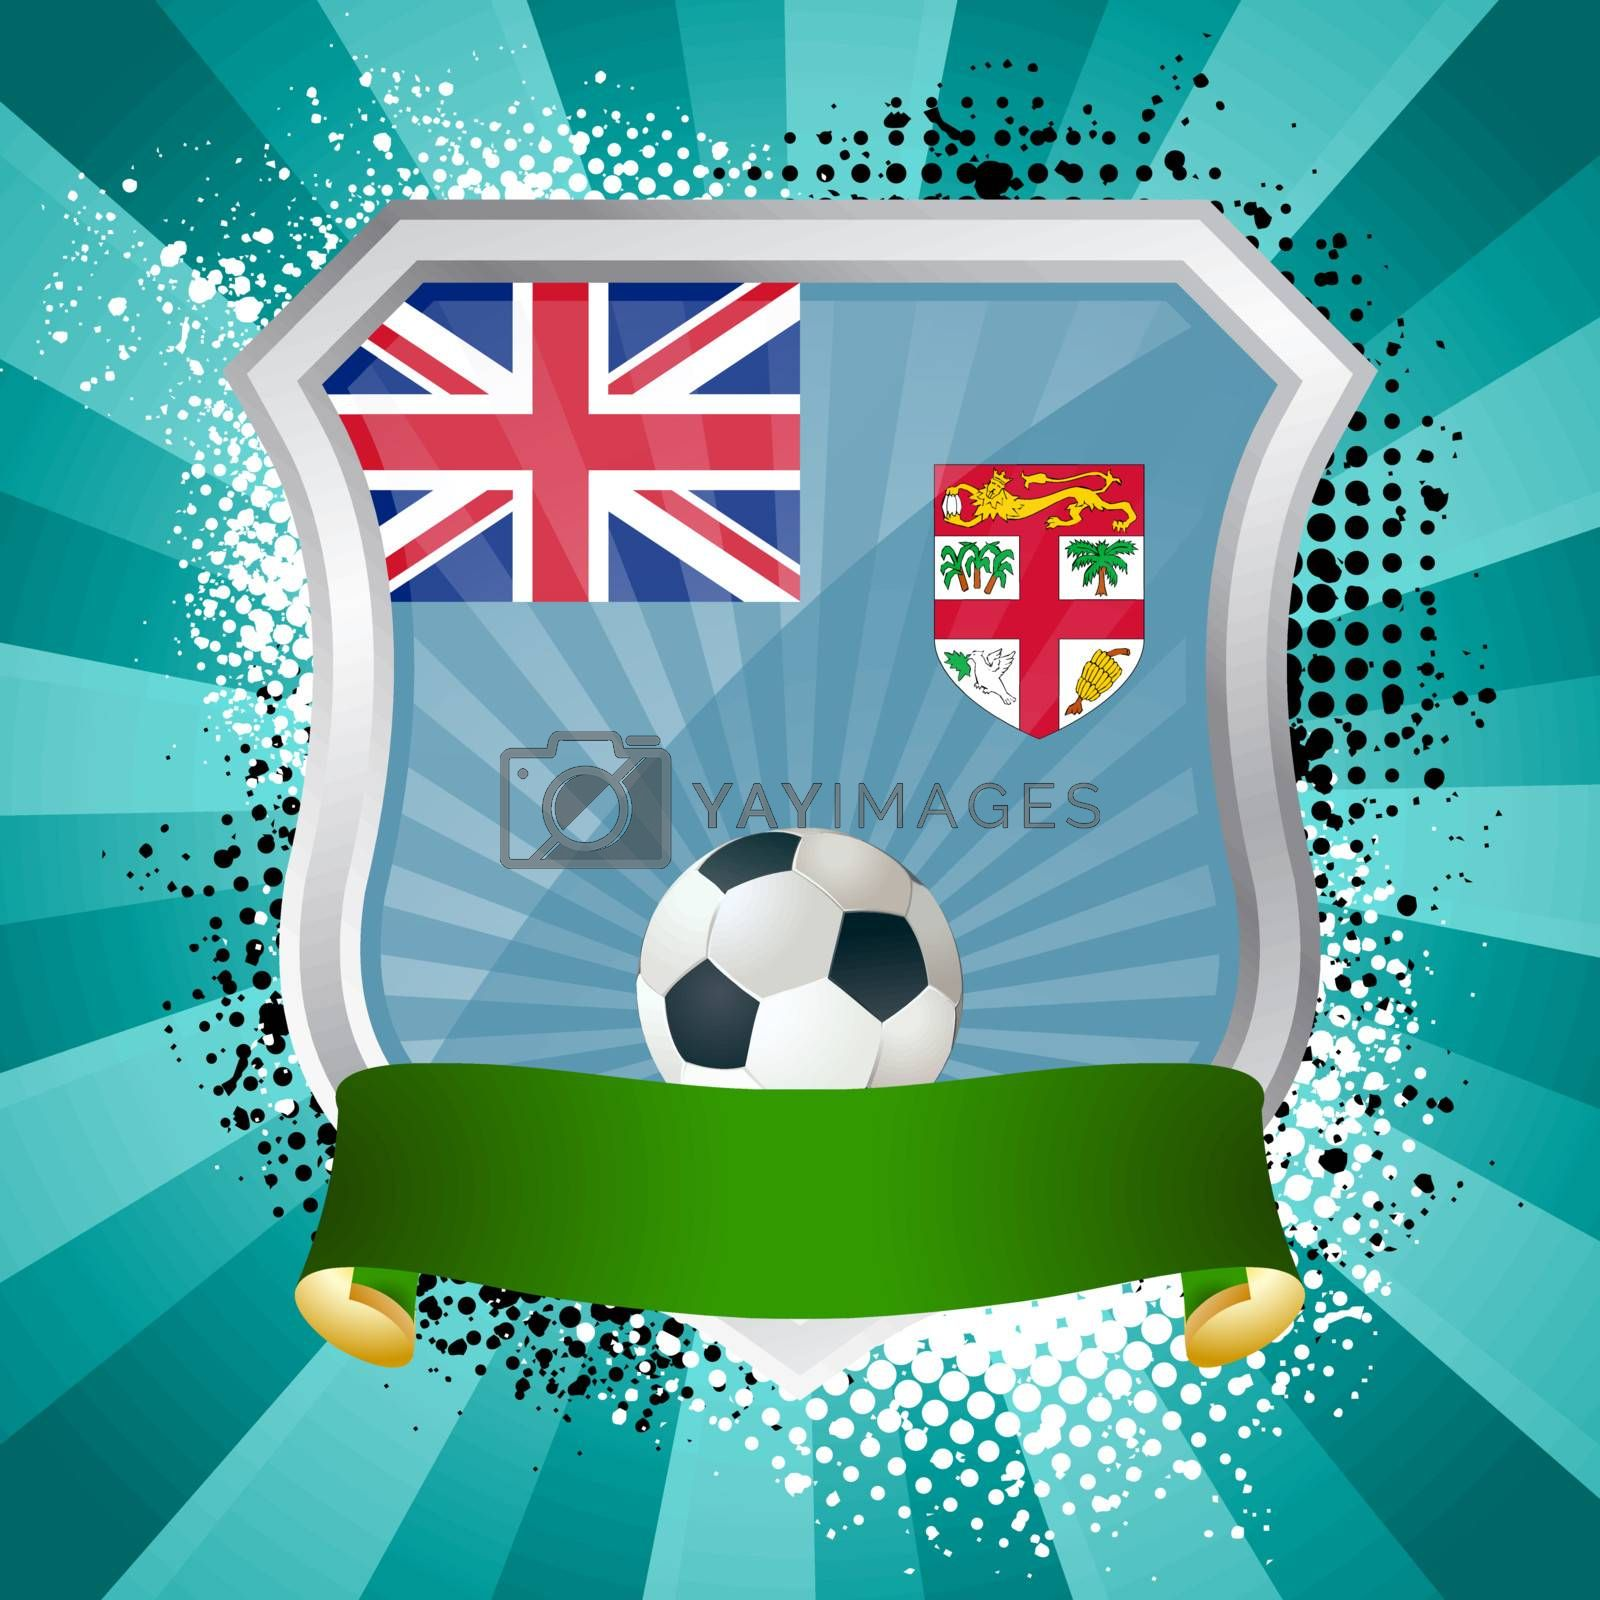 Royalty free image of Shield with flag of Fiji by Petrov_Vladimir